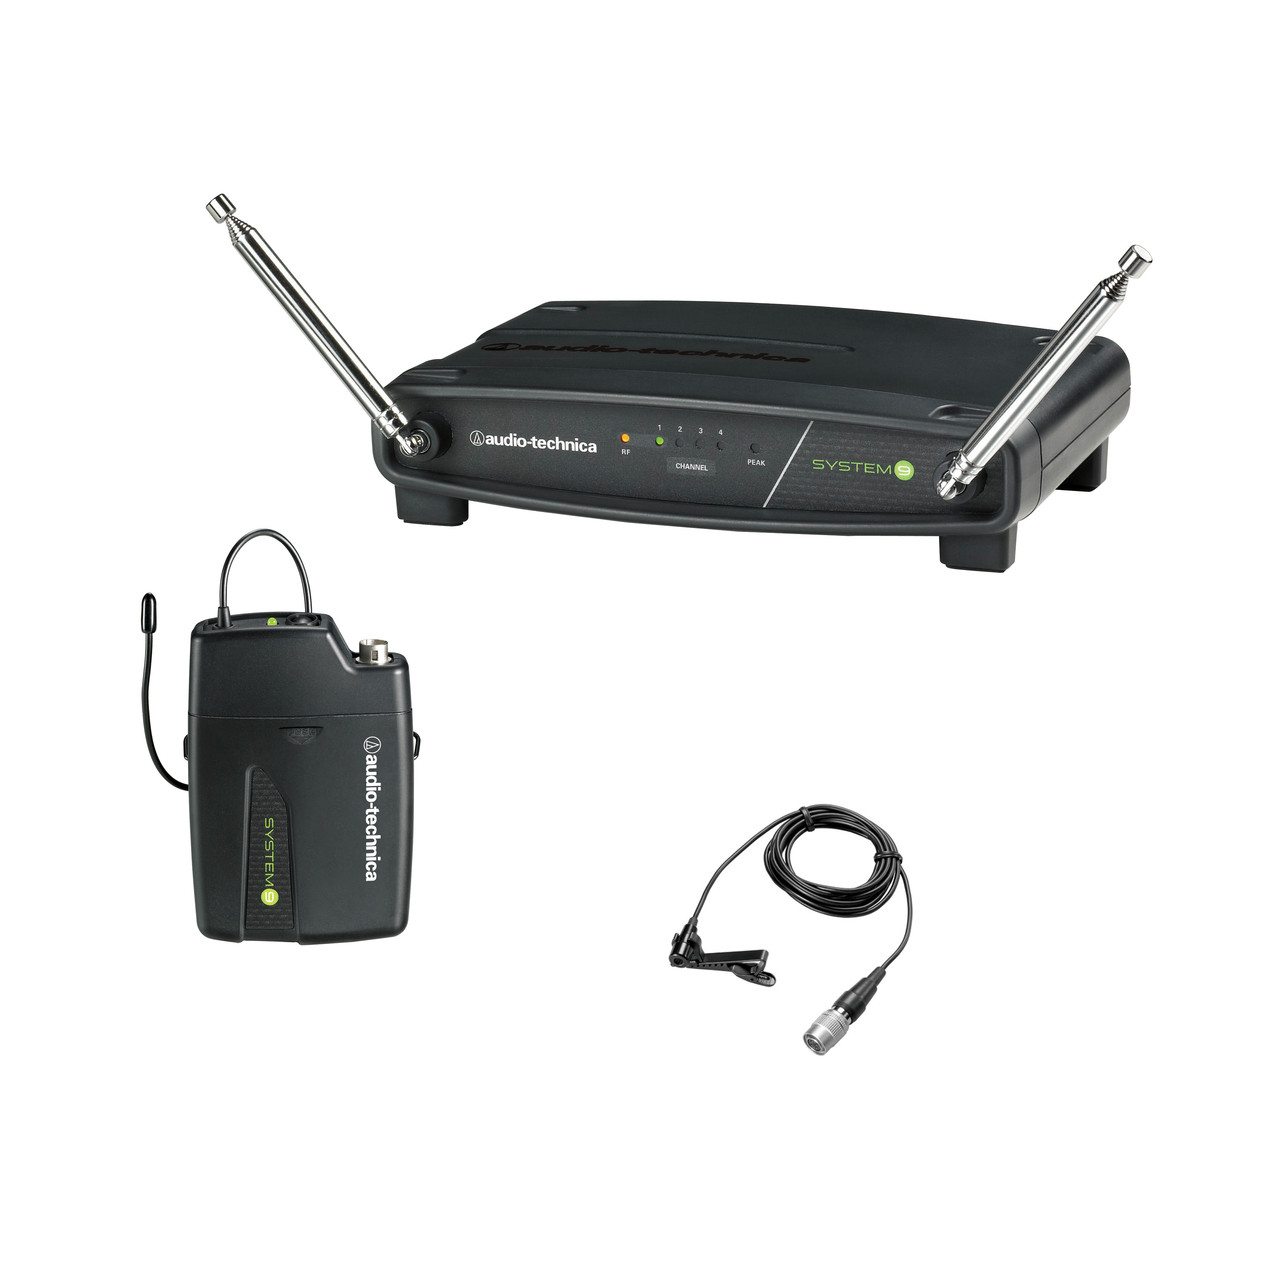 Audio-Technica ATW-901A/L SYSTEM 9 VHF 4-Channel Switchable System with  Omnidirectional Lavalier Mic